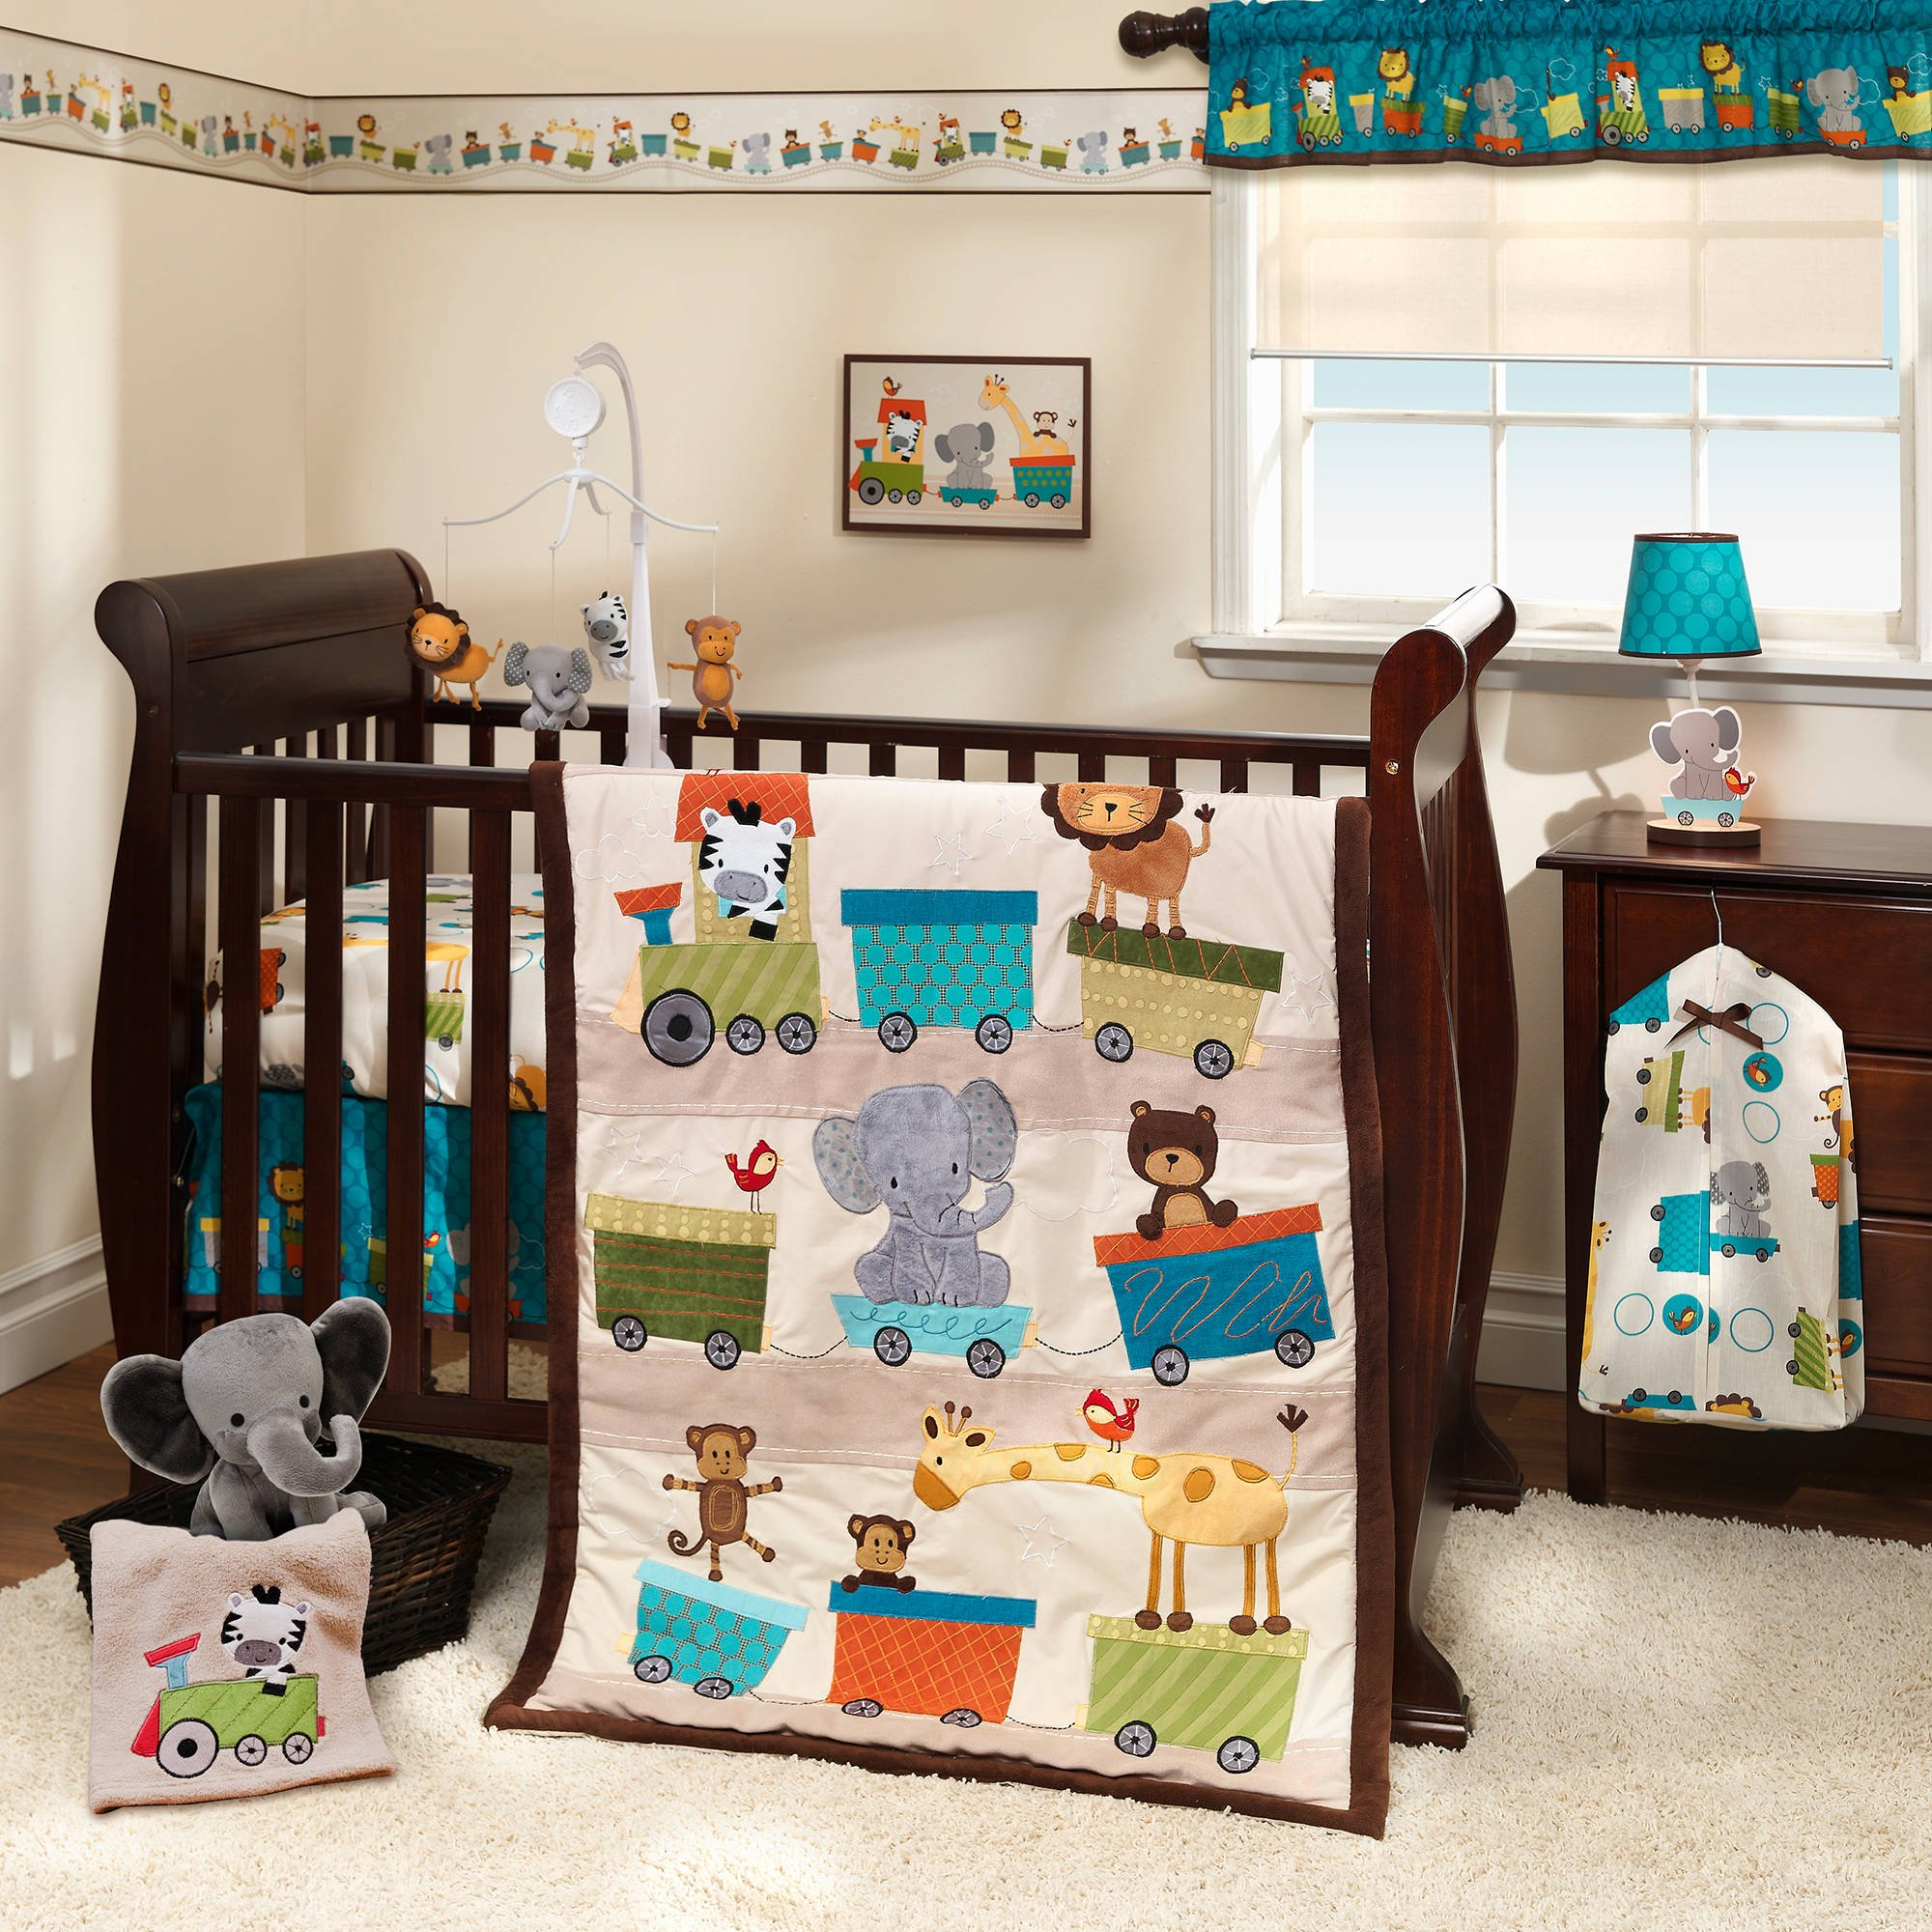 3 Piece Brown Blue Multicolor Baby Animals Crib Bedding Set, Newborn Train Themed Nursery Bed Set Infant Child Elephant Giraffe Monkey Lion Blanket Quilt Horizontal Stripe pattern, Polyester Cotton